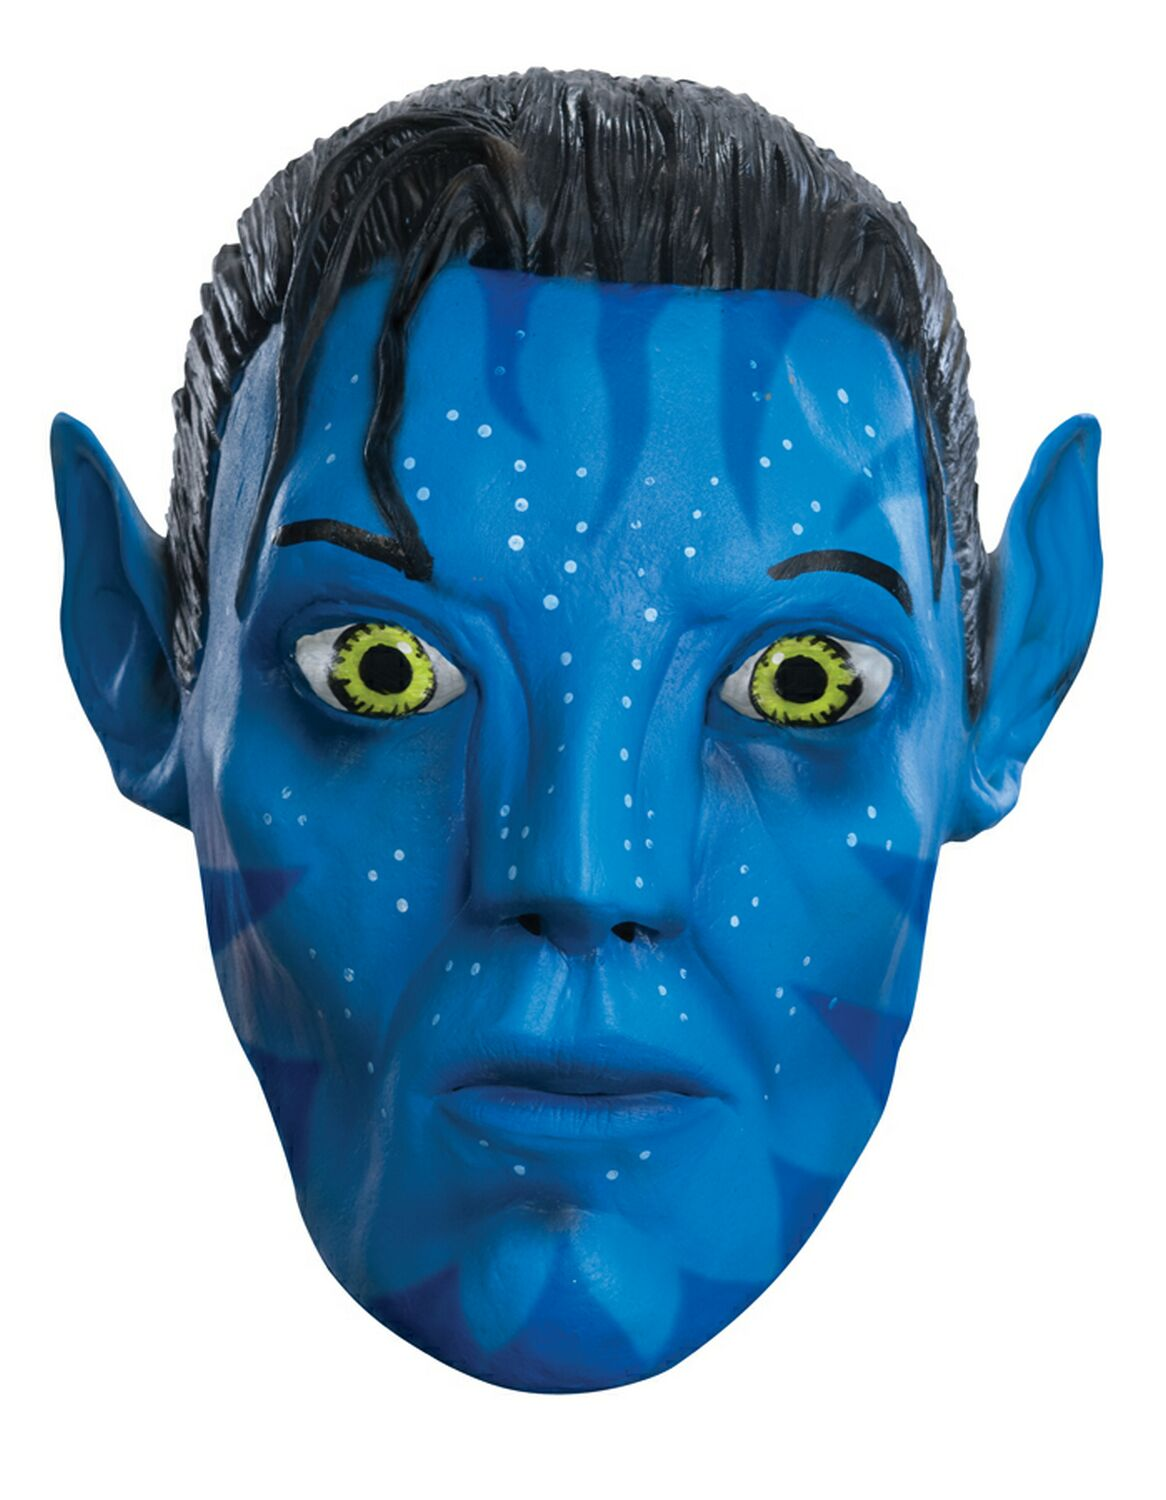 NEW FULL HEAD FACE AVATAR MASK WITH EARS MOVIE FILM JAKE SULLY LATEX FANCY DRESS